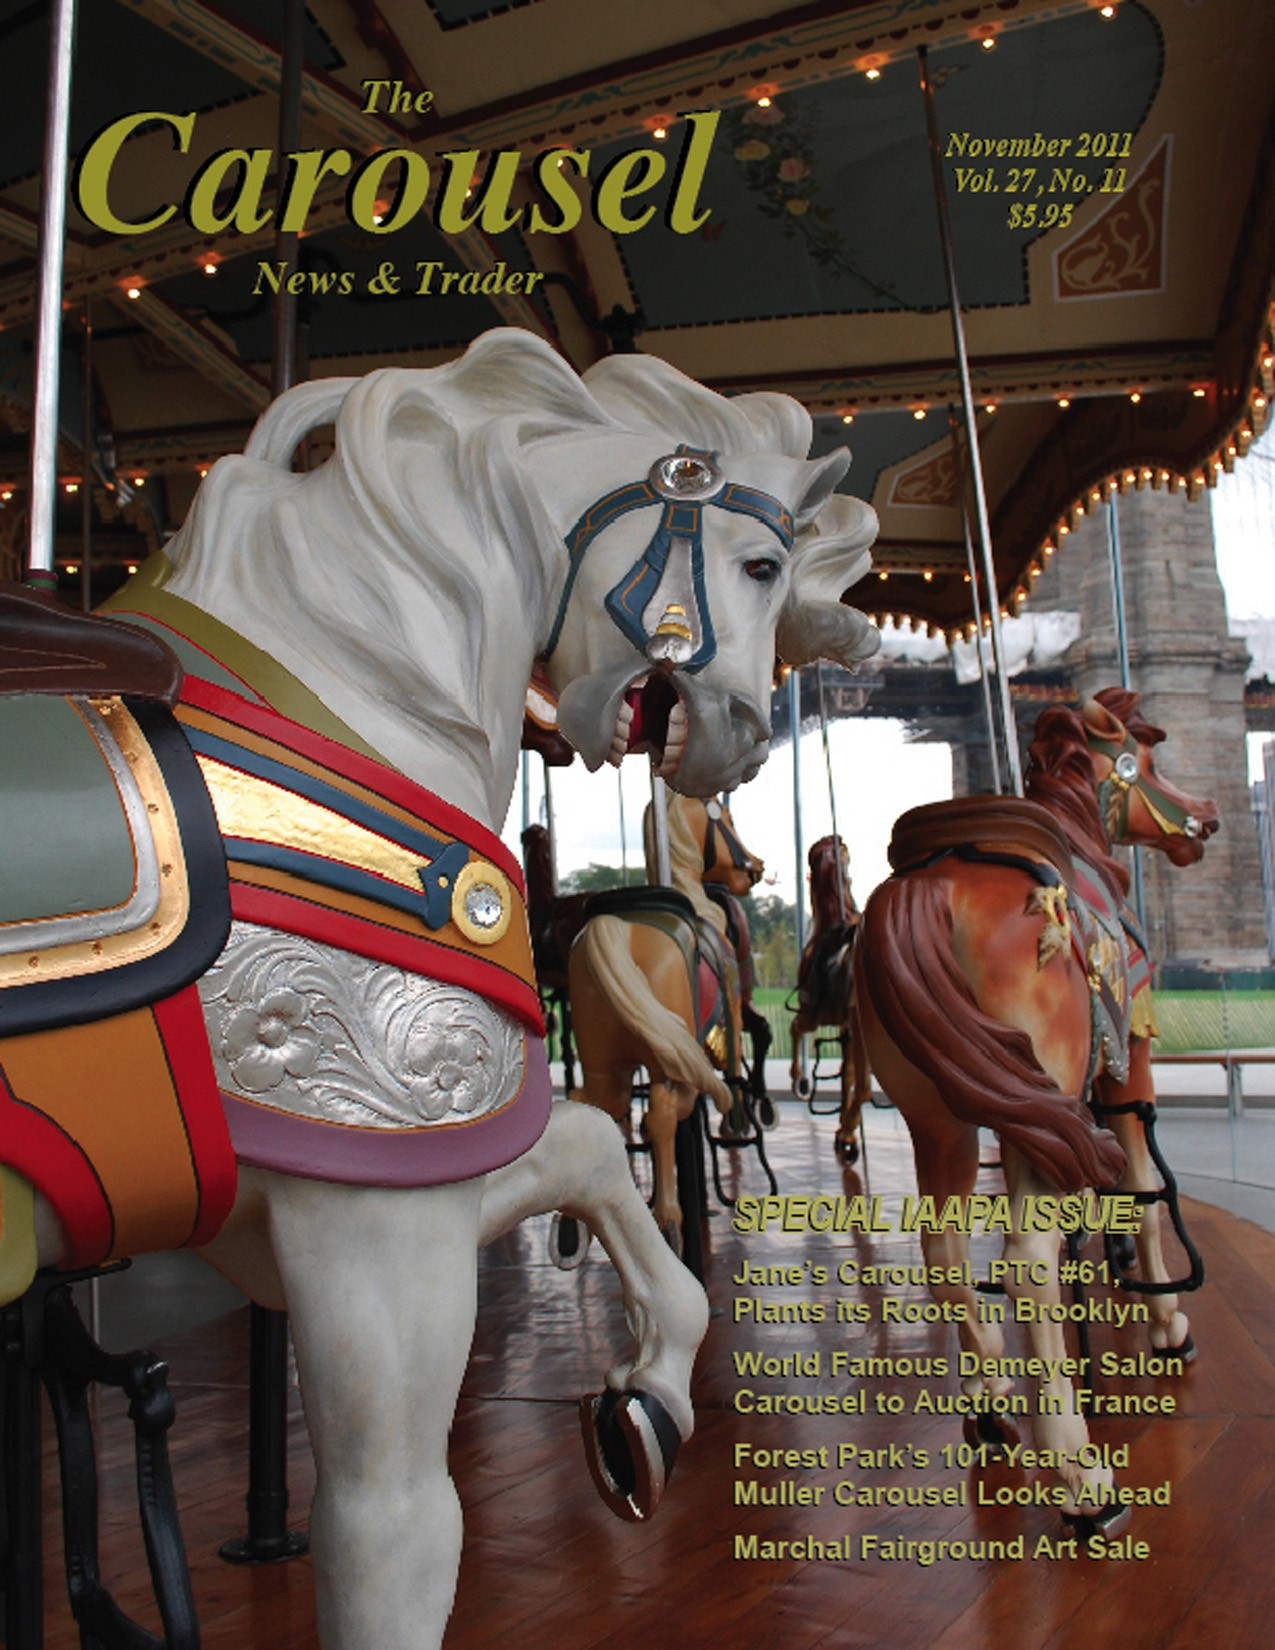 Carousel-news-cover-11-PTC-61-Janes-Carousel-November-2011